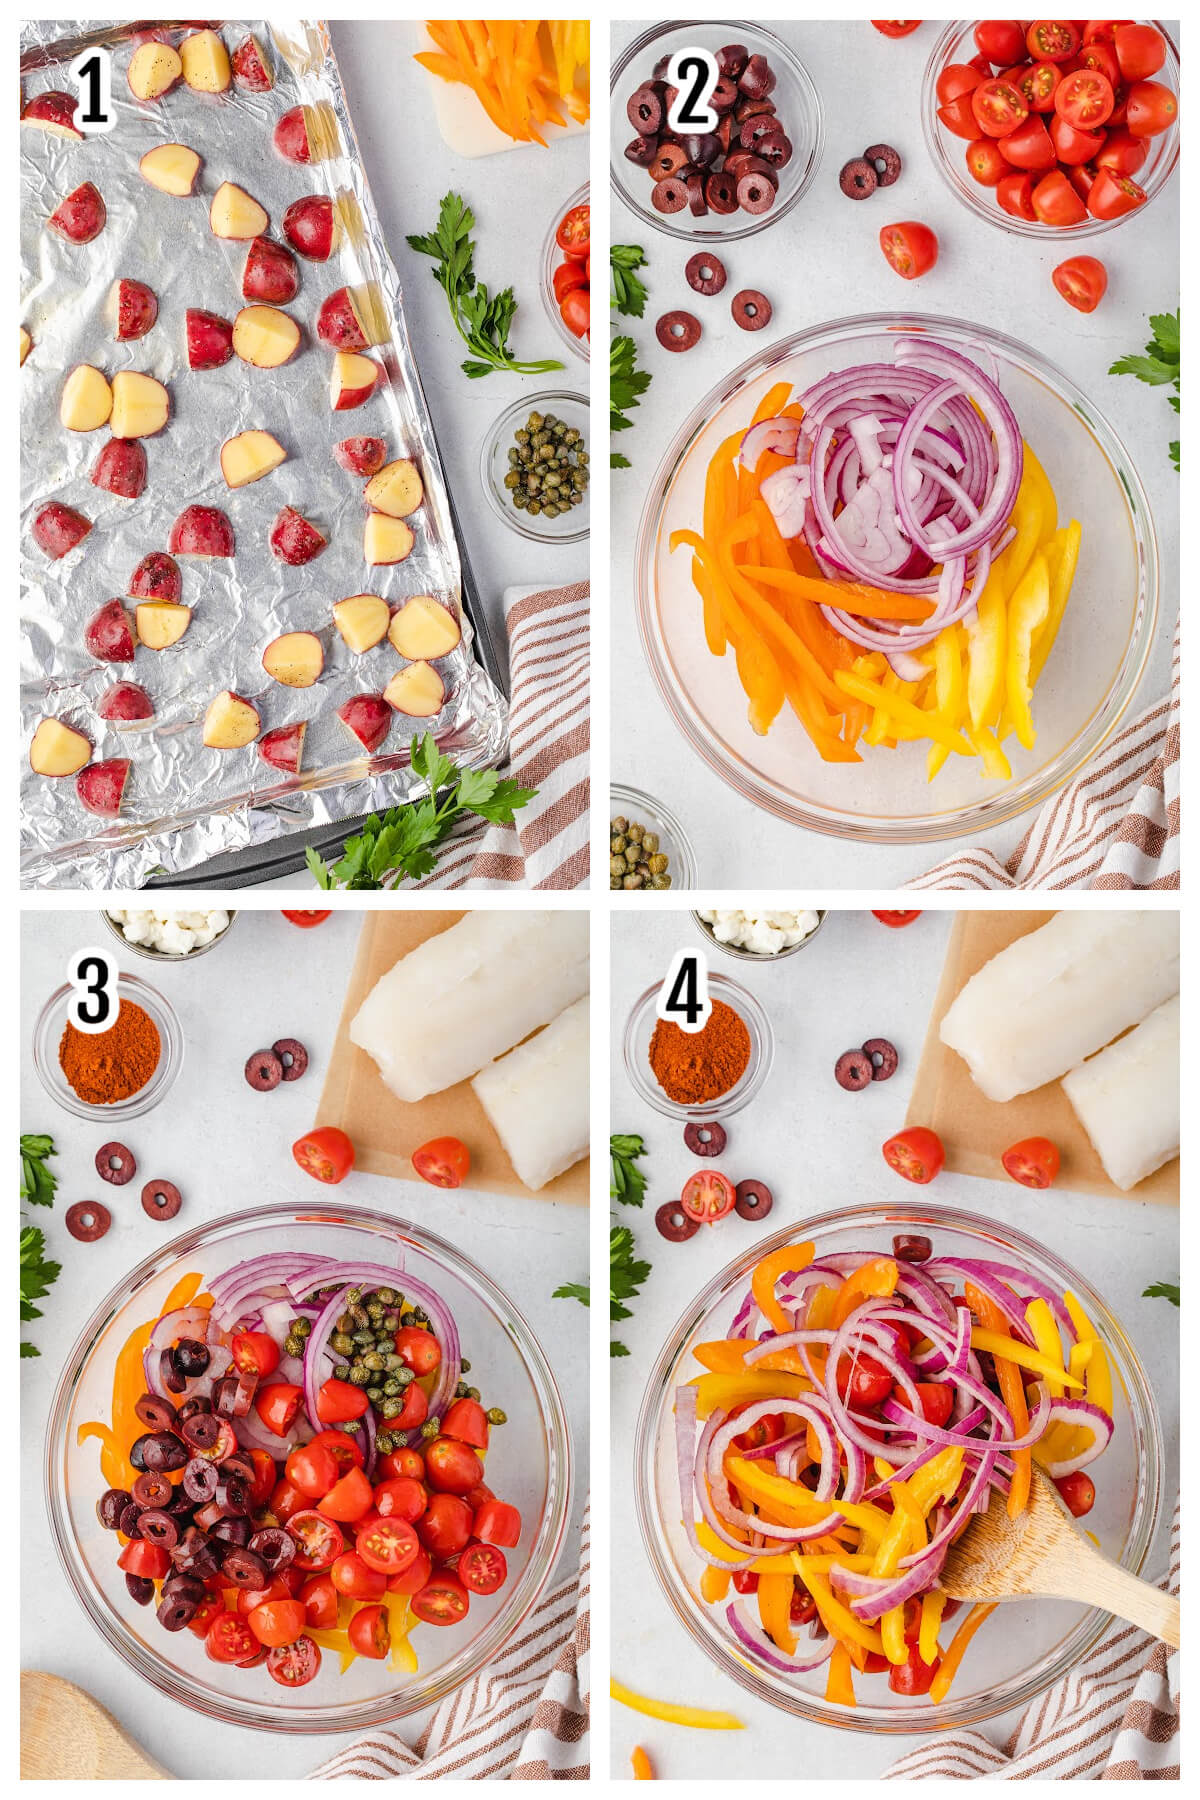 Collage of the first four step by step instructions for the baked vegetables and cod fish.